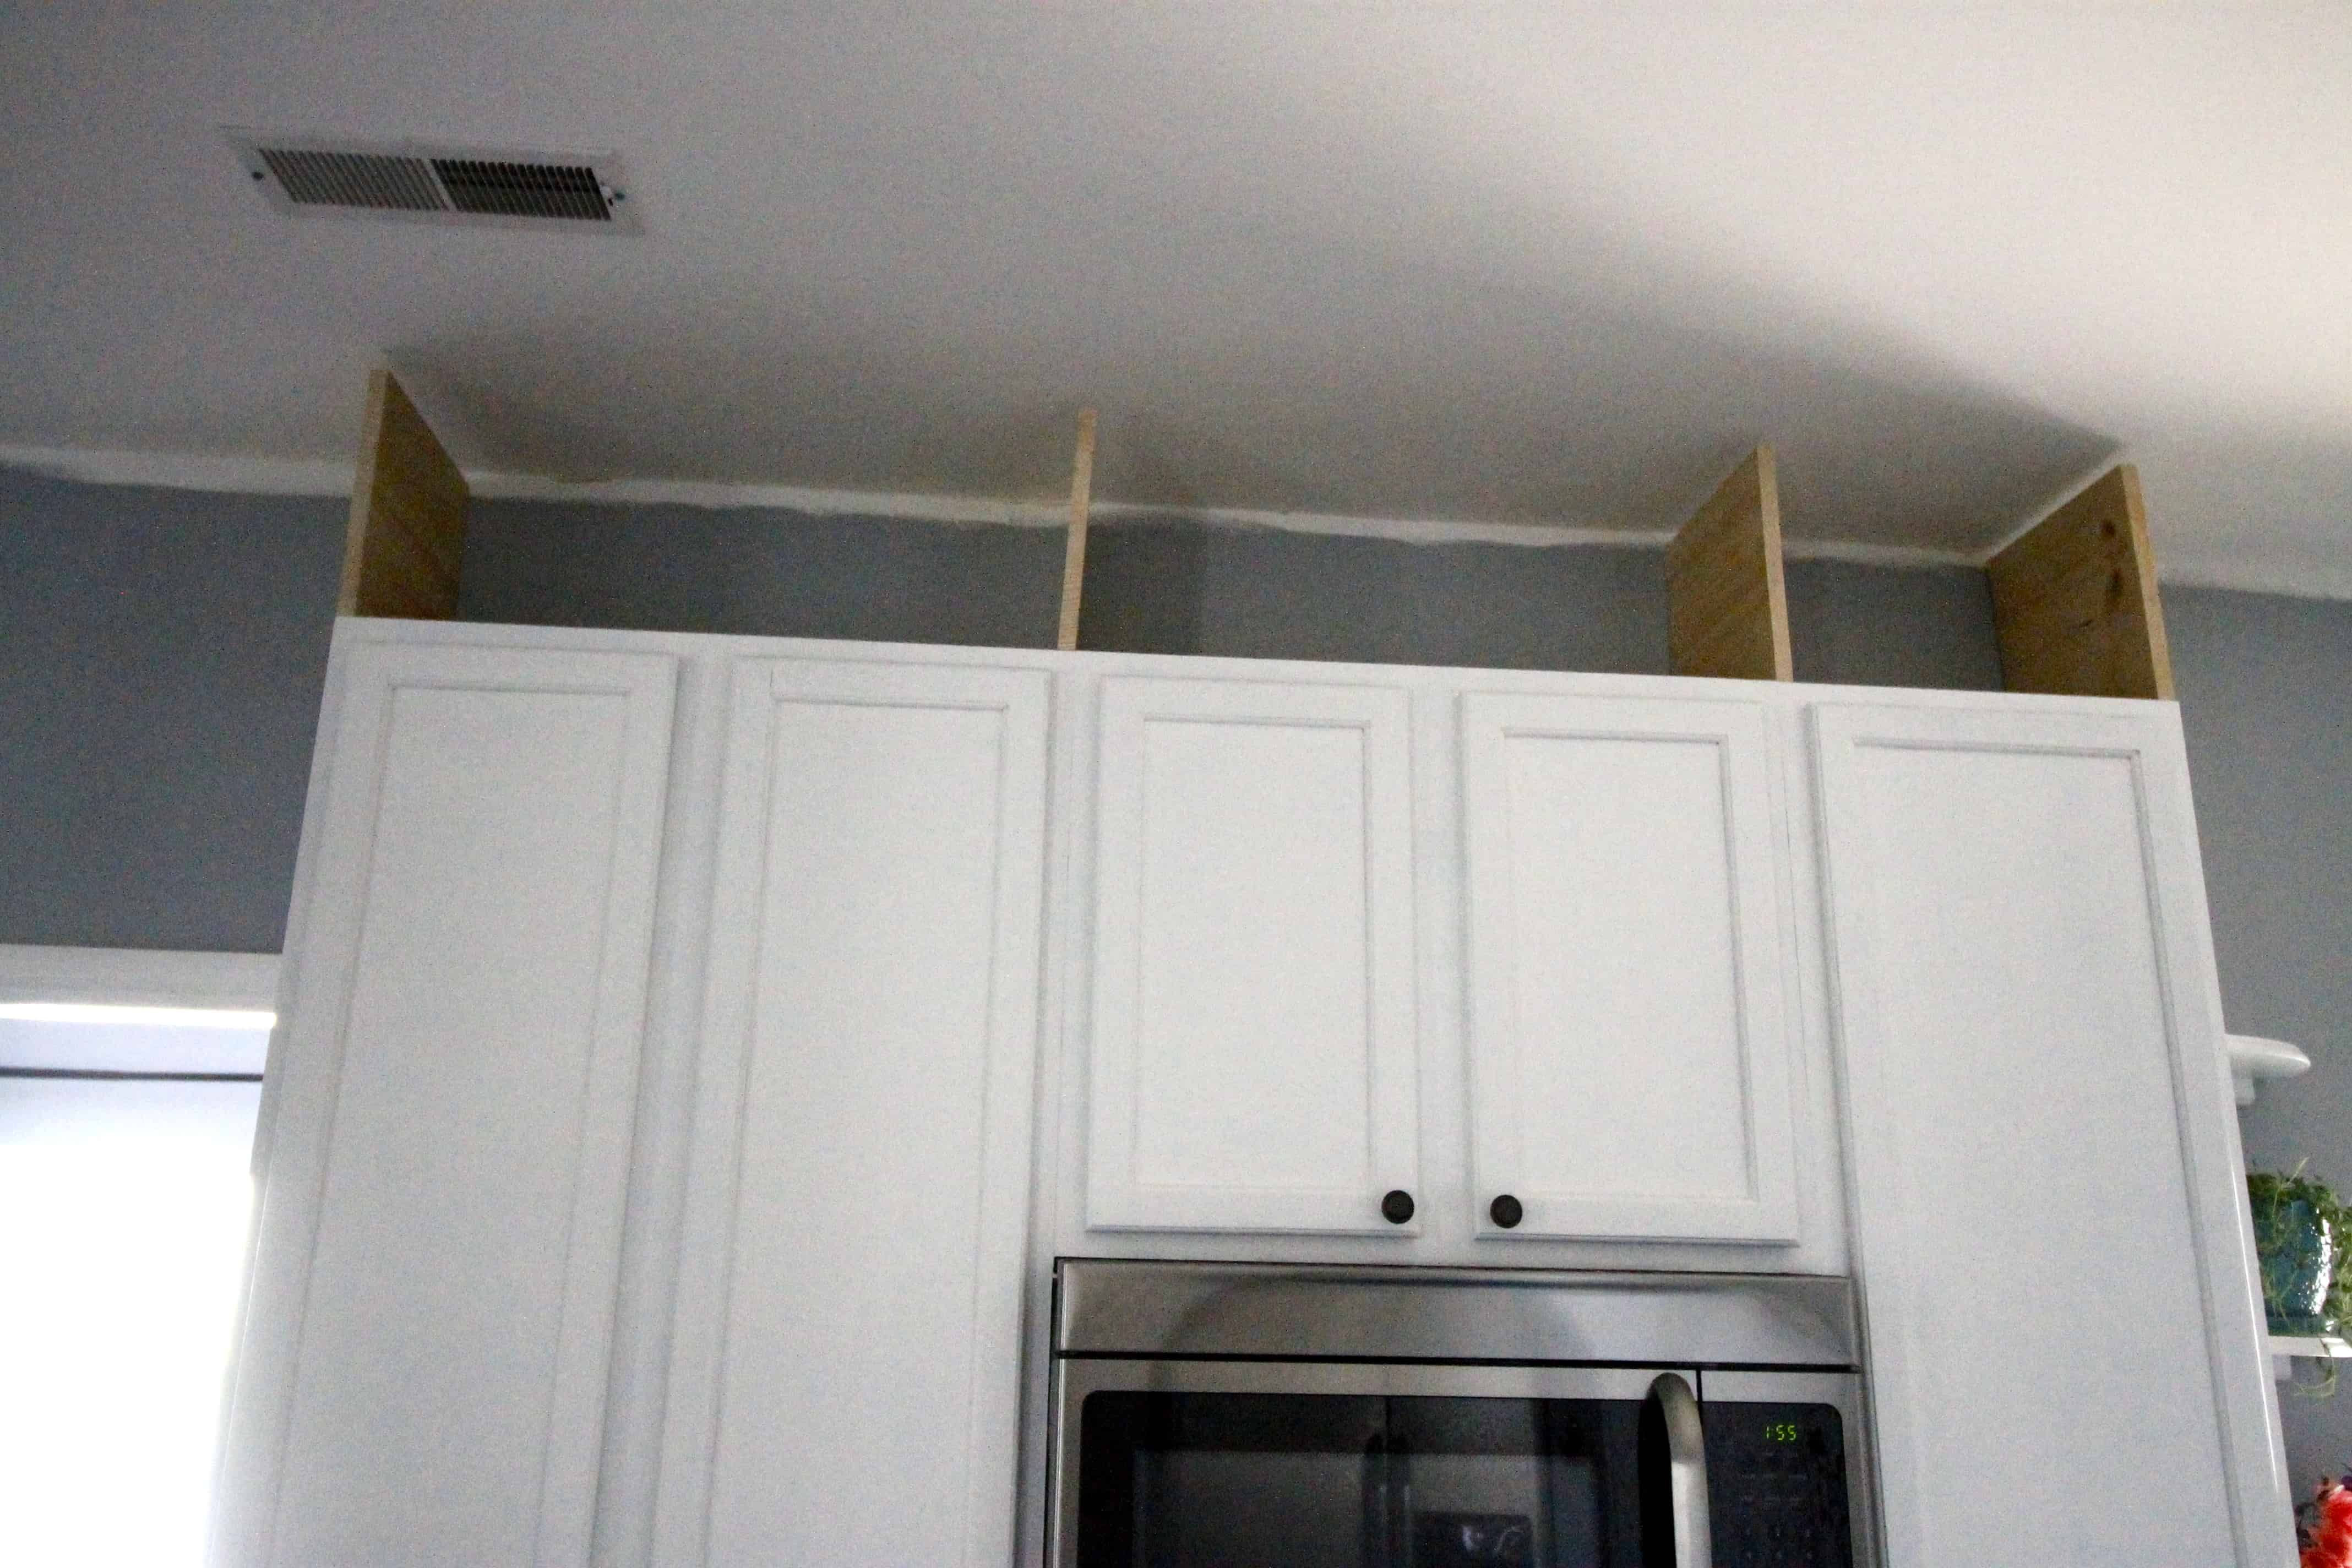 How To Extend Kitchen Cabinets To The Ceiling In 2020 Cabinets To Ceiling Kitchen Cabinets To Ceiling Kitchen Decor Modern